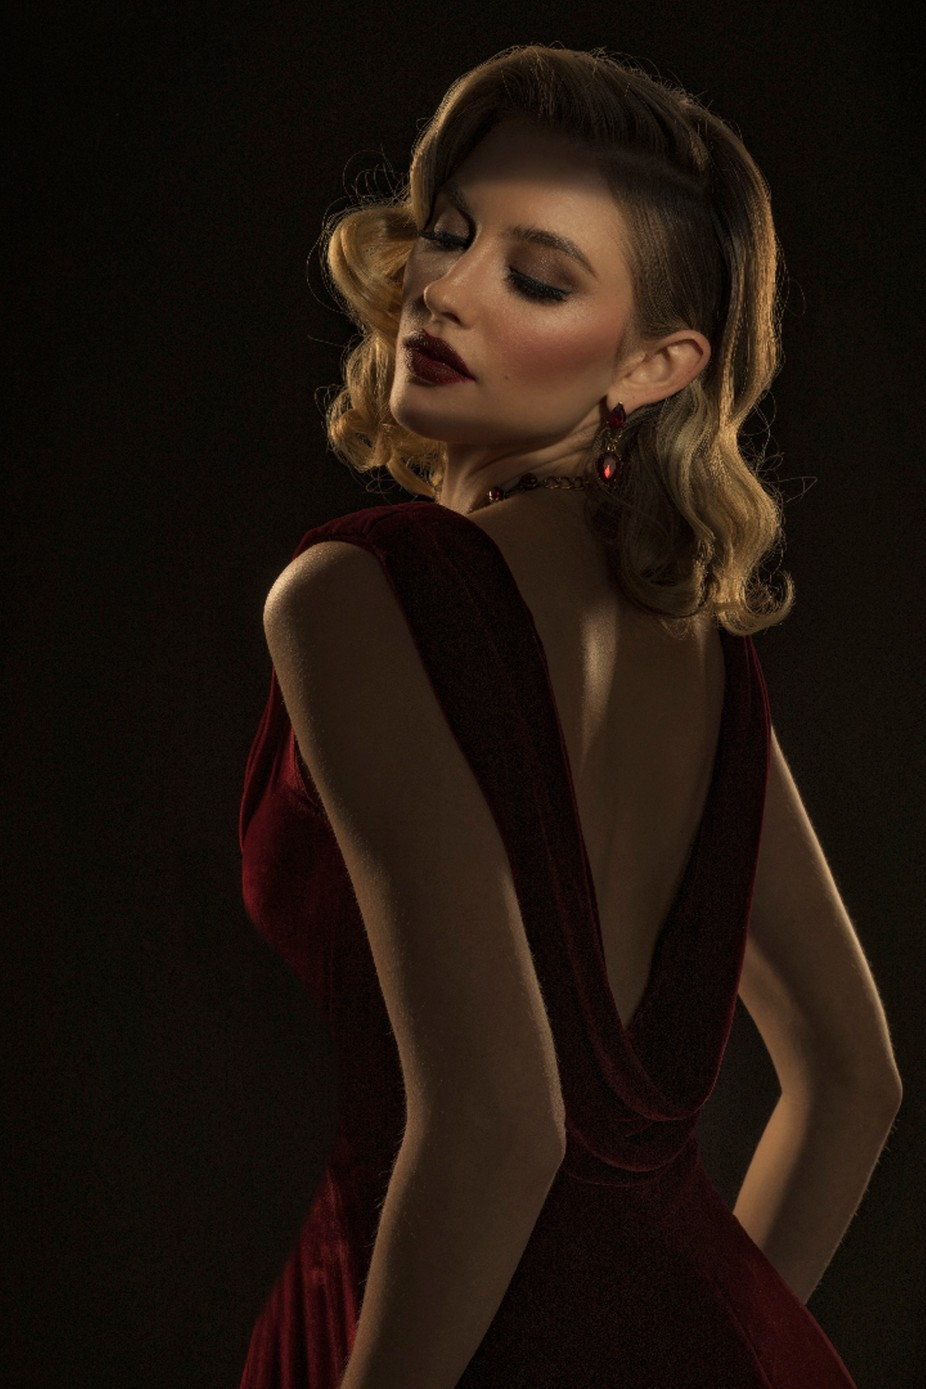 Glamour_Girl_in_RED by Carlotta - Fashion Statement Photo Contest